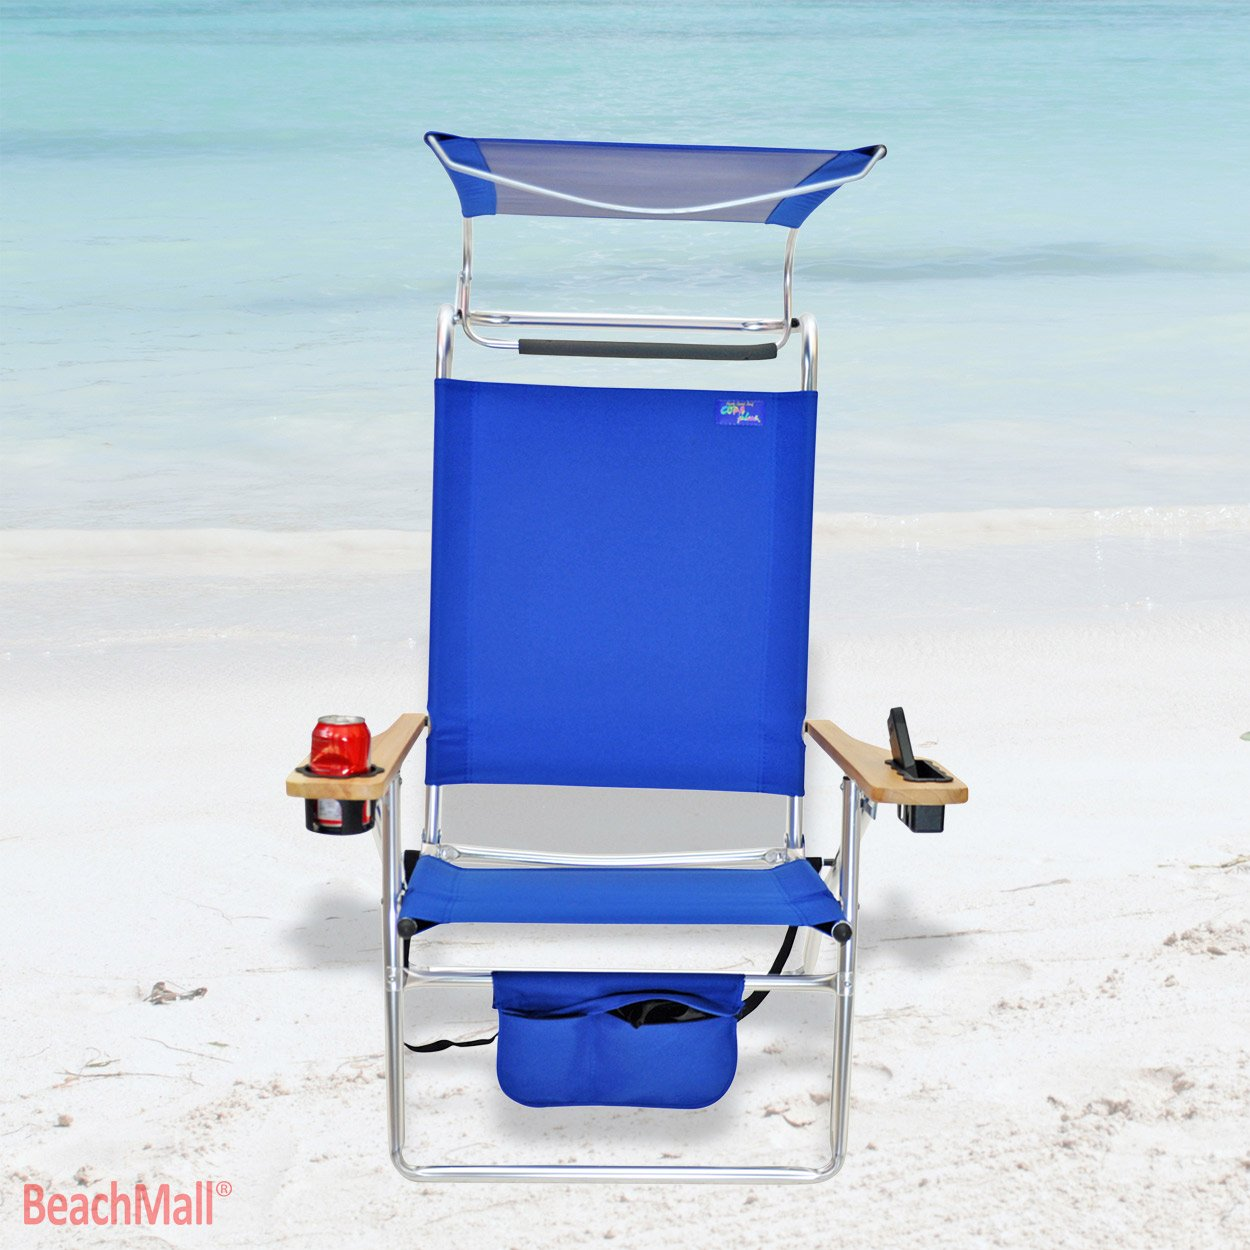 Beach chair with canopy - Amazon Com Beachmall Deluxe 4 Position Aluminum Beach Chair With Canopy And Storage Pouch Camping Chairs Sports Outdoors